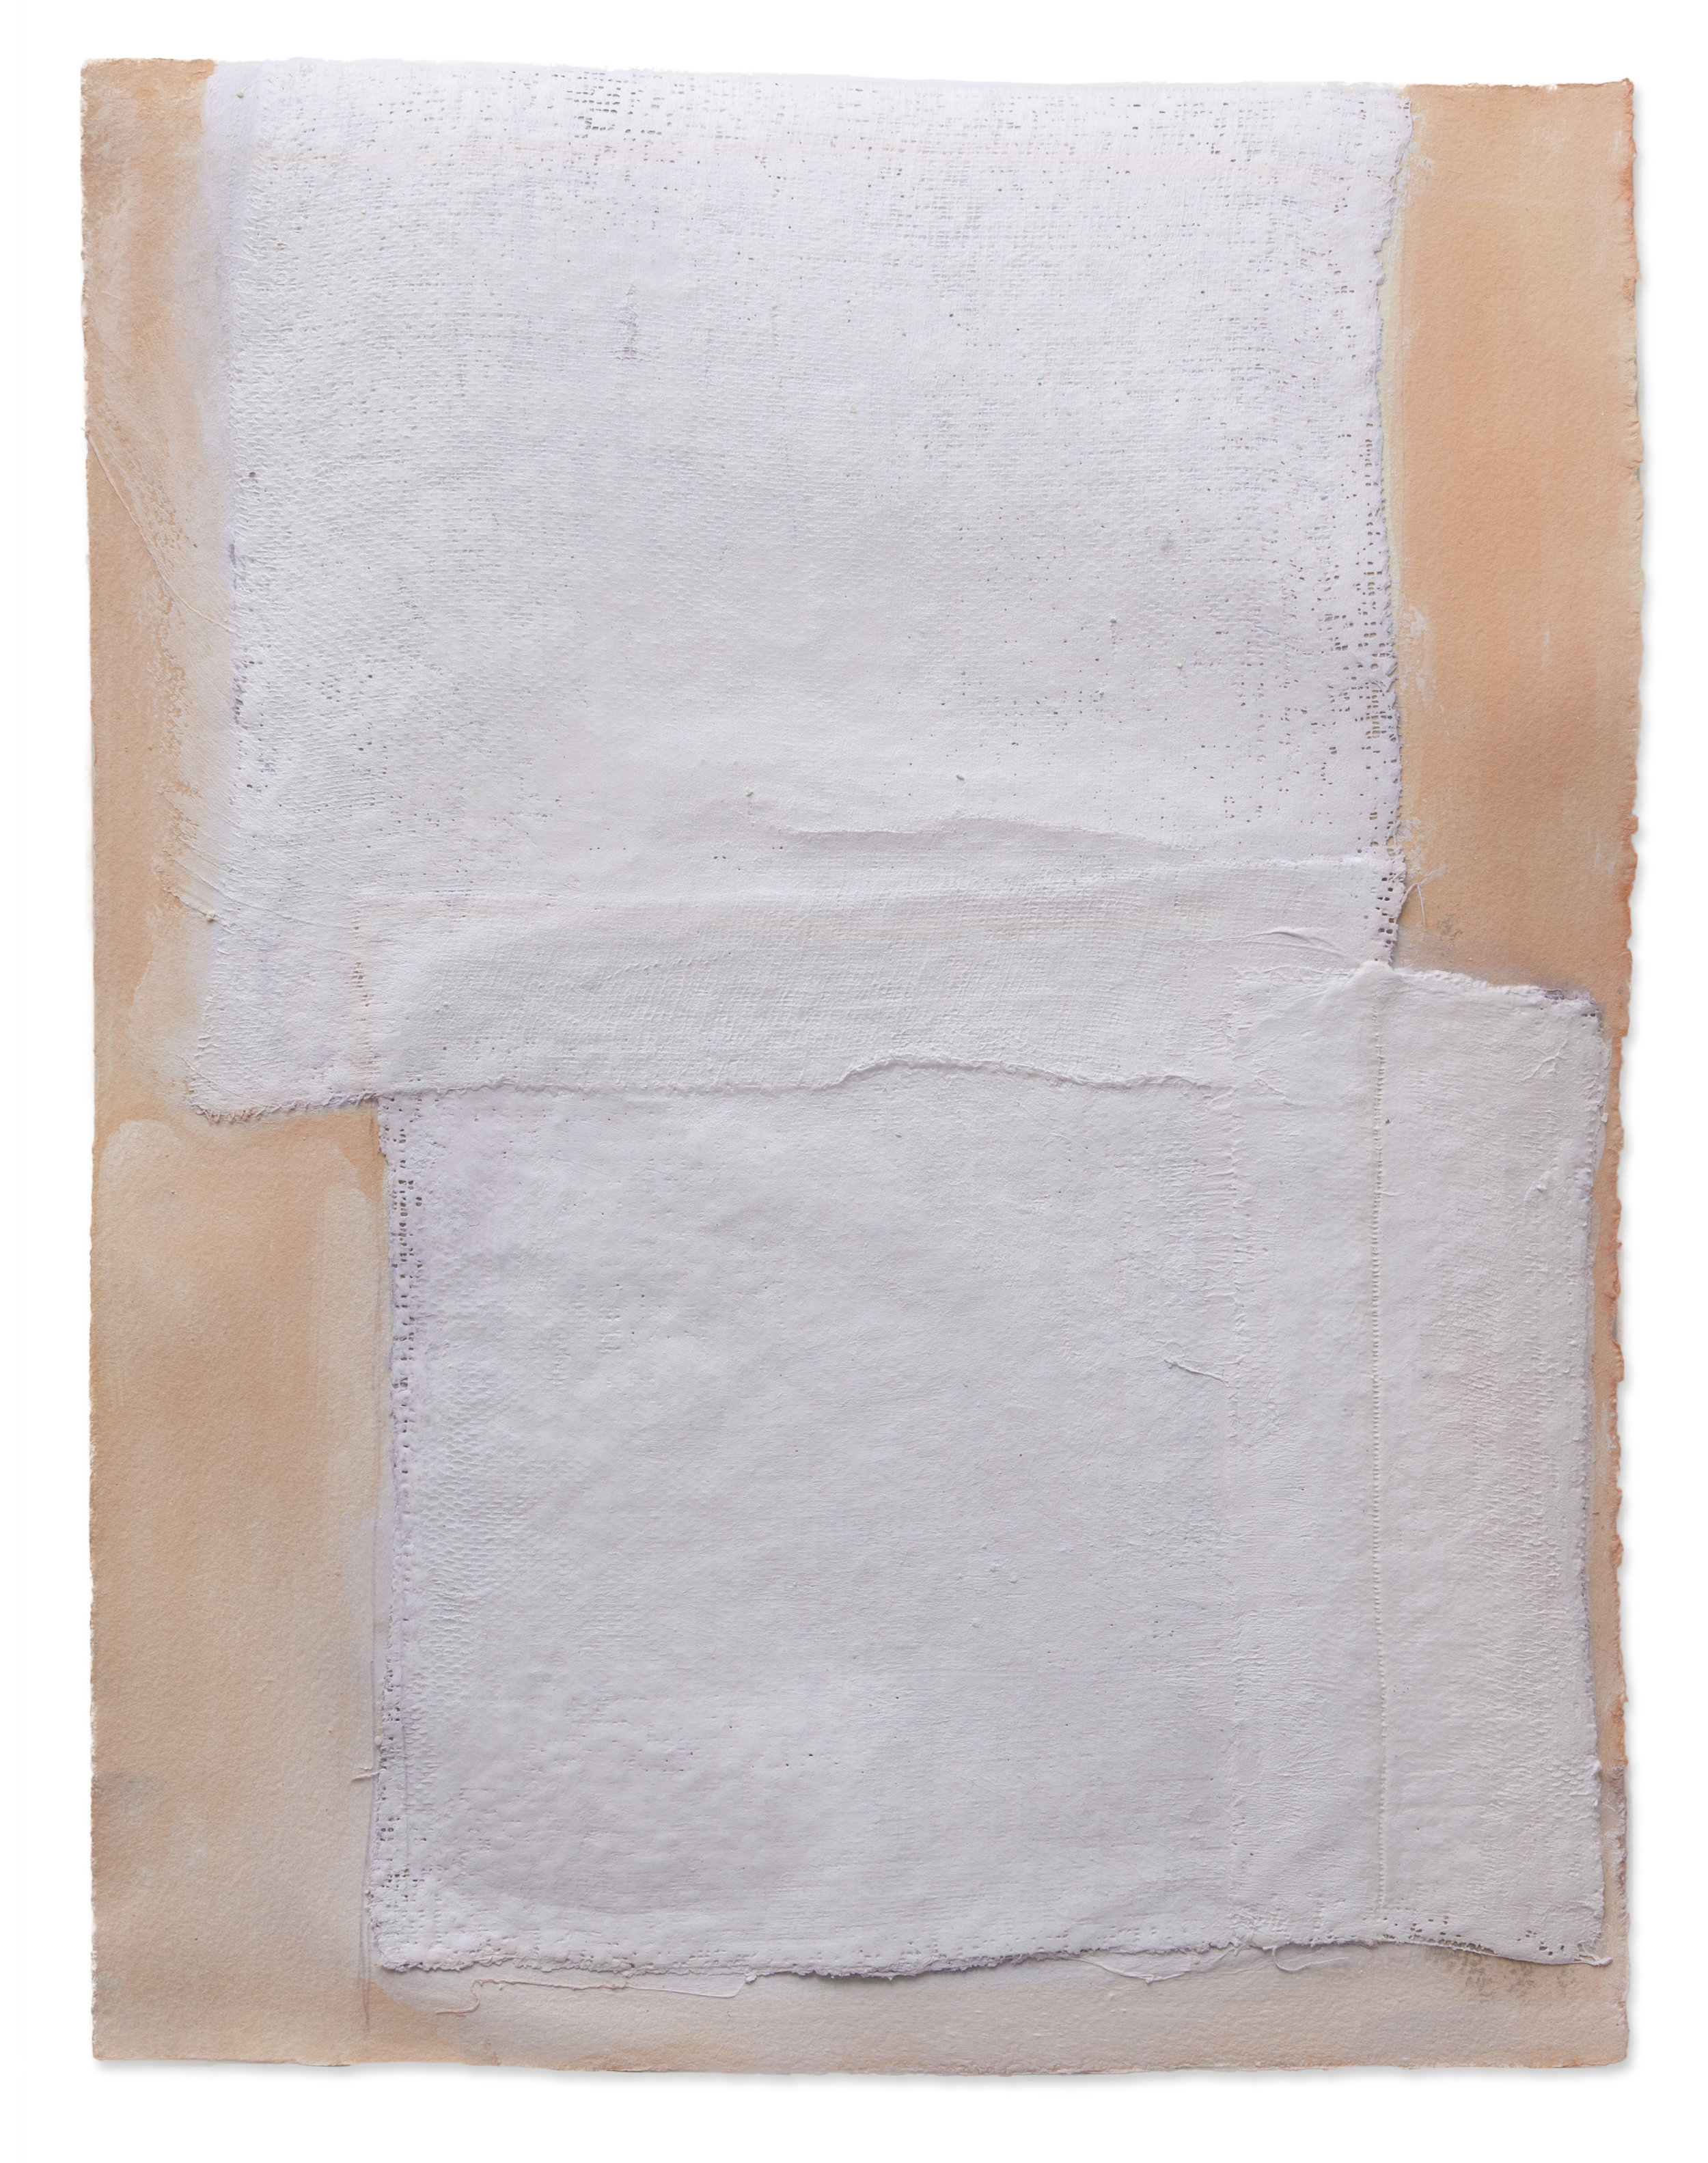 Lav Squared, 2018, plaster, paint on paper, 14 x 18 in, $2,000